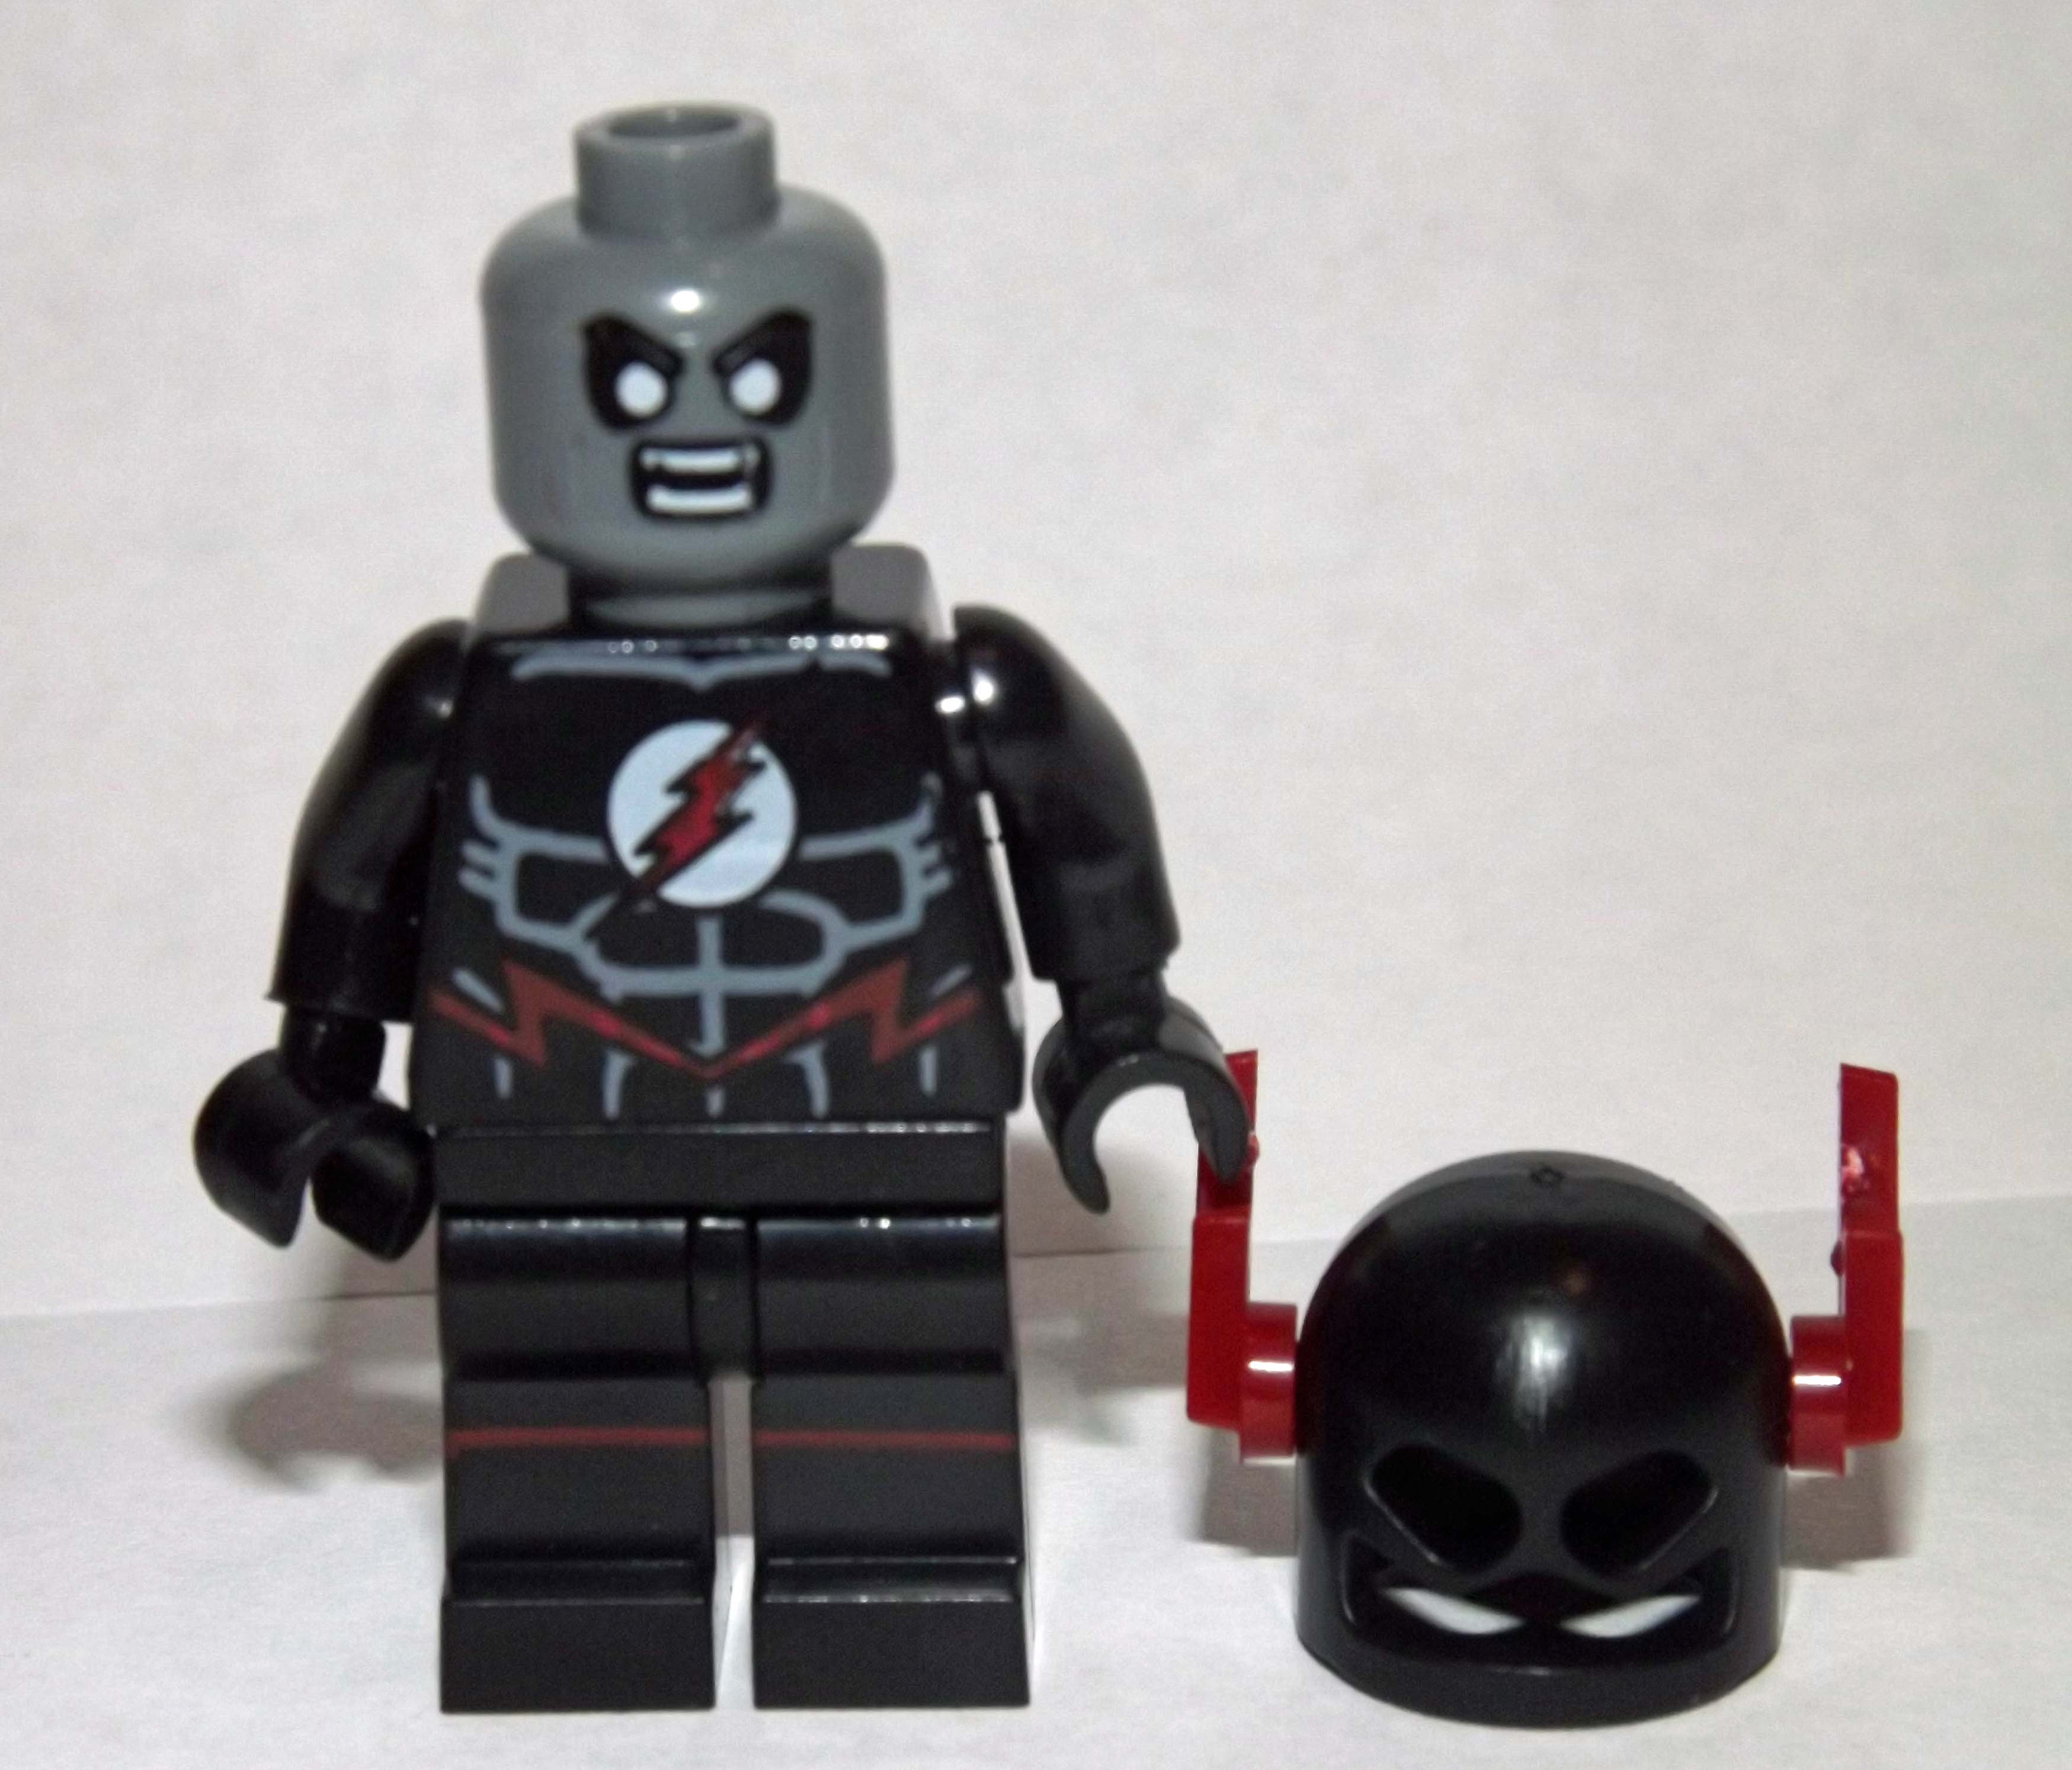 Evil Black Flash Minifigure Minifigureoutlet